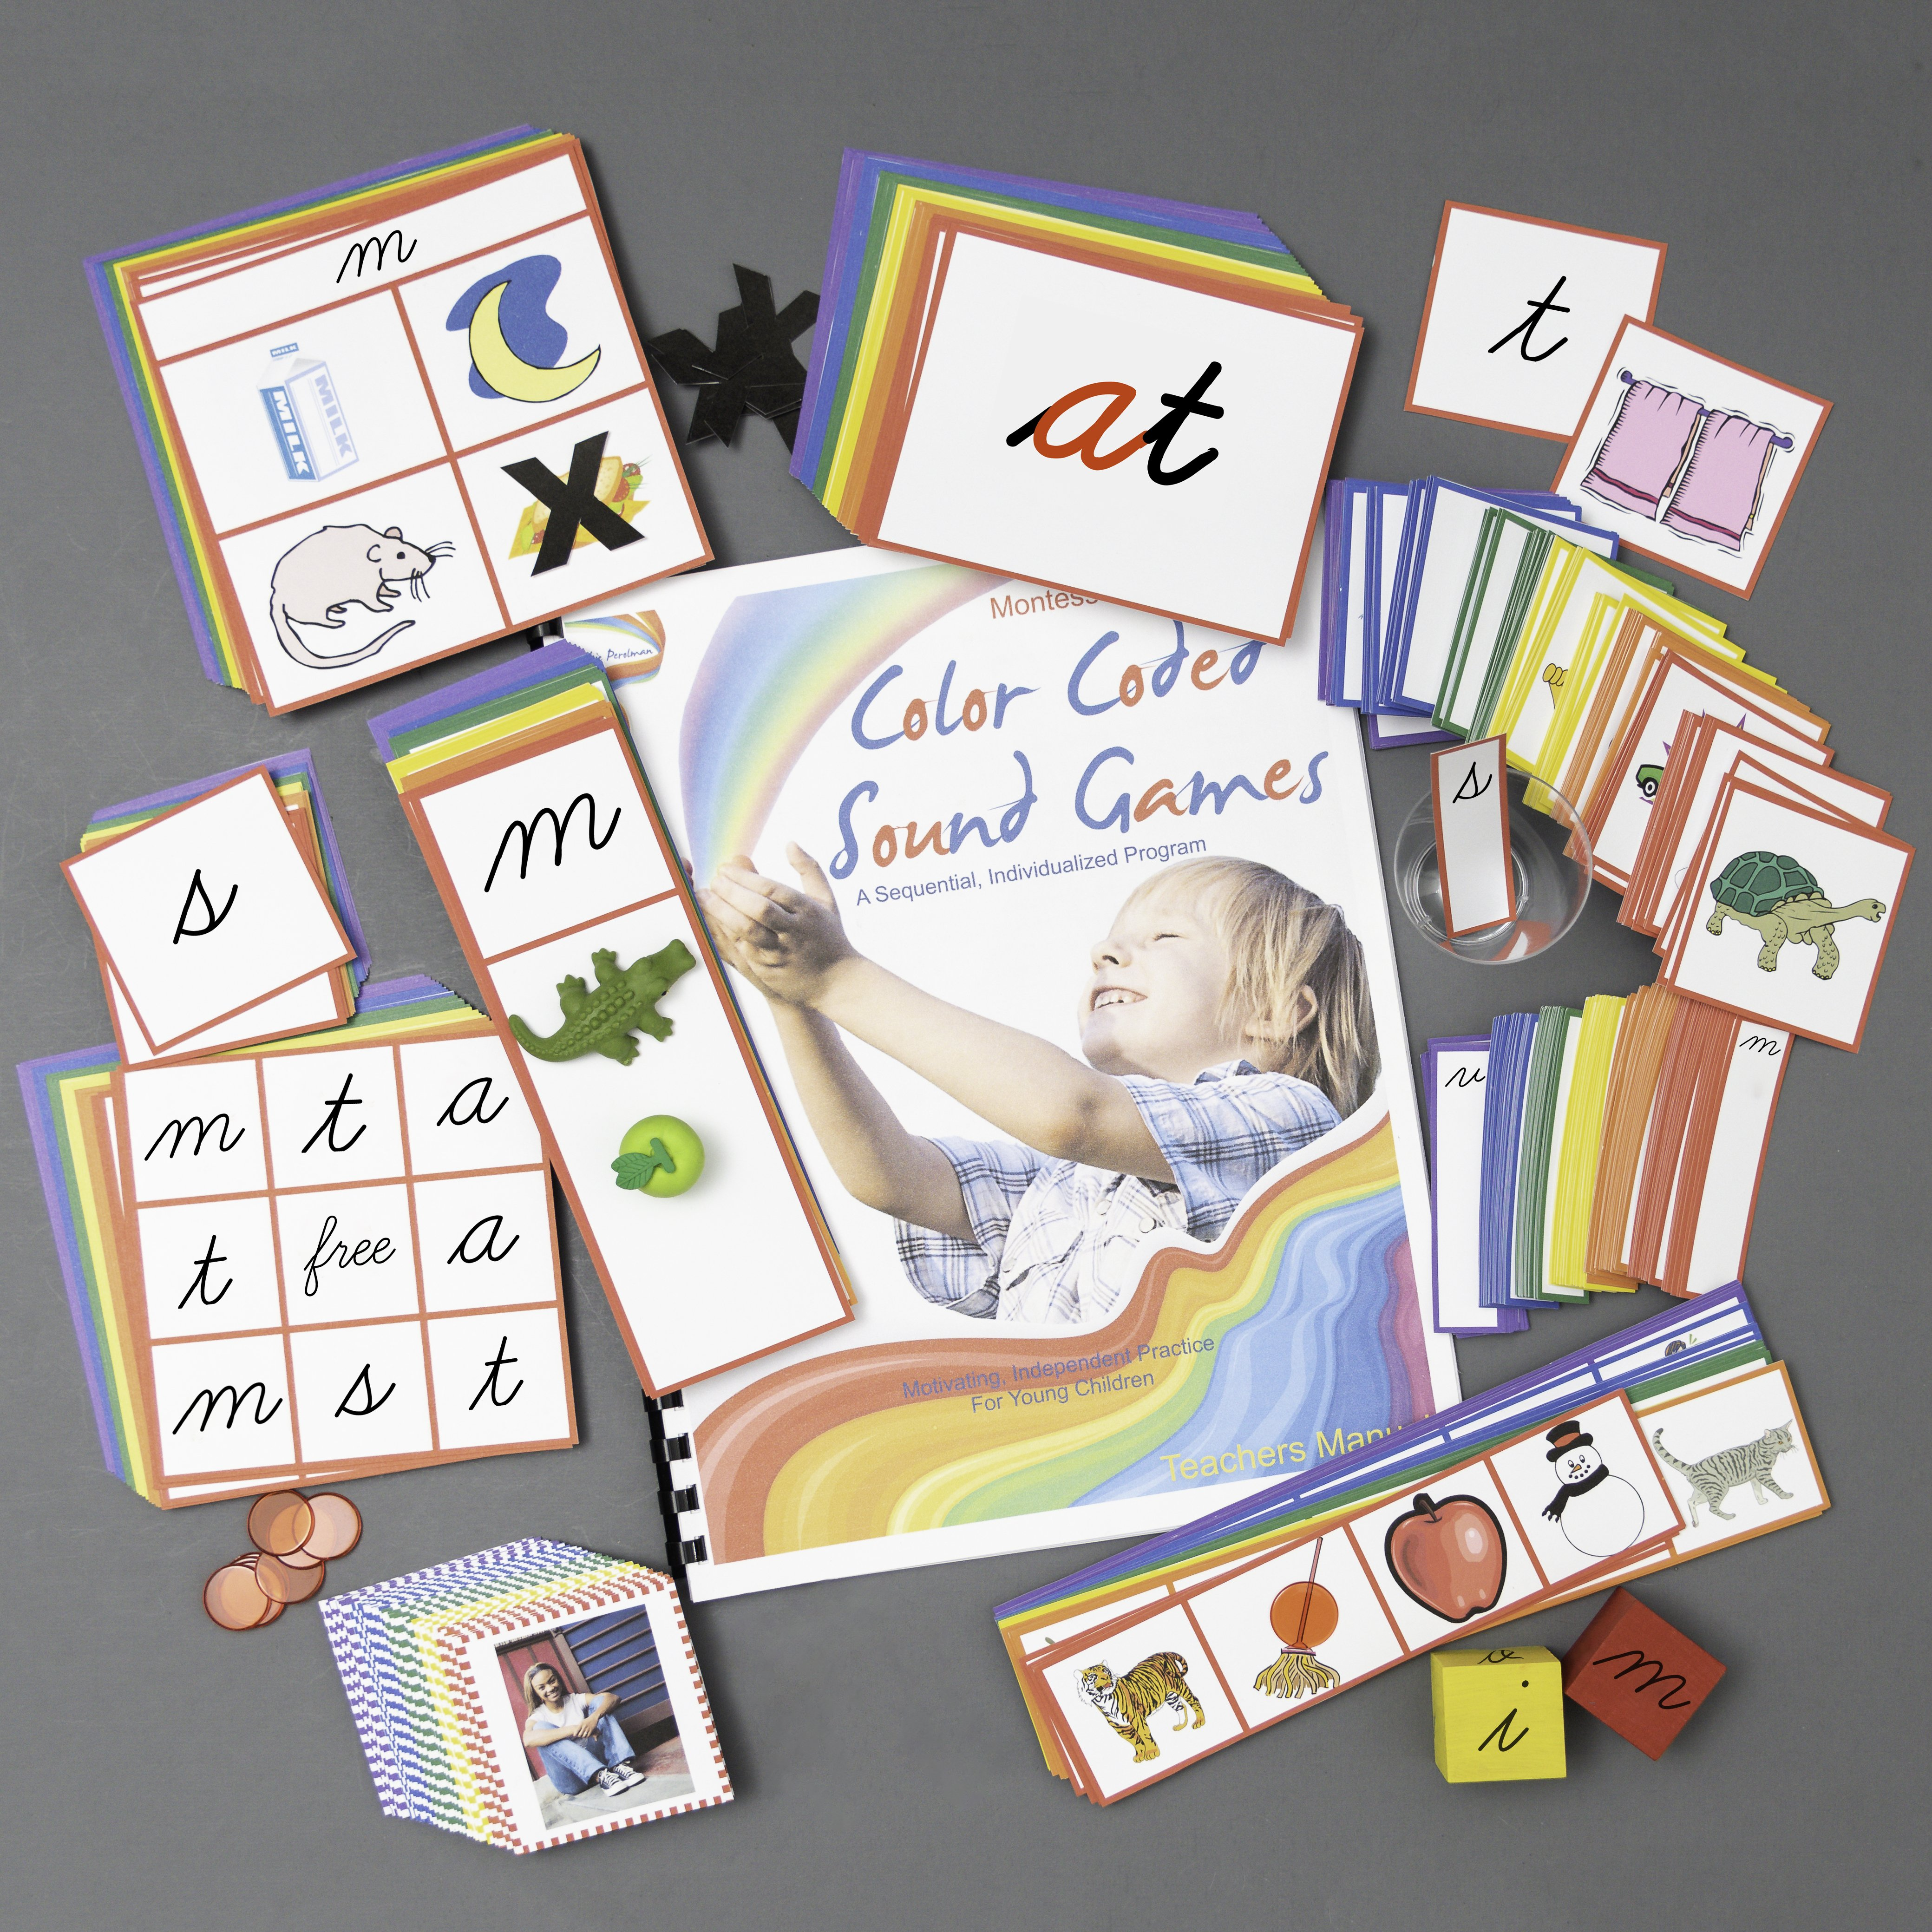 Color Coded Sounds Games - Complete Set in Cursive